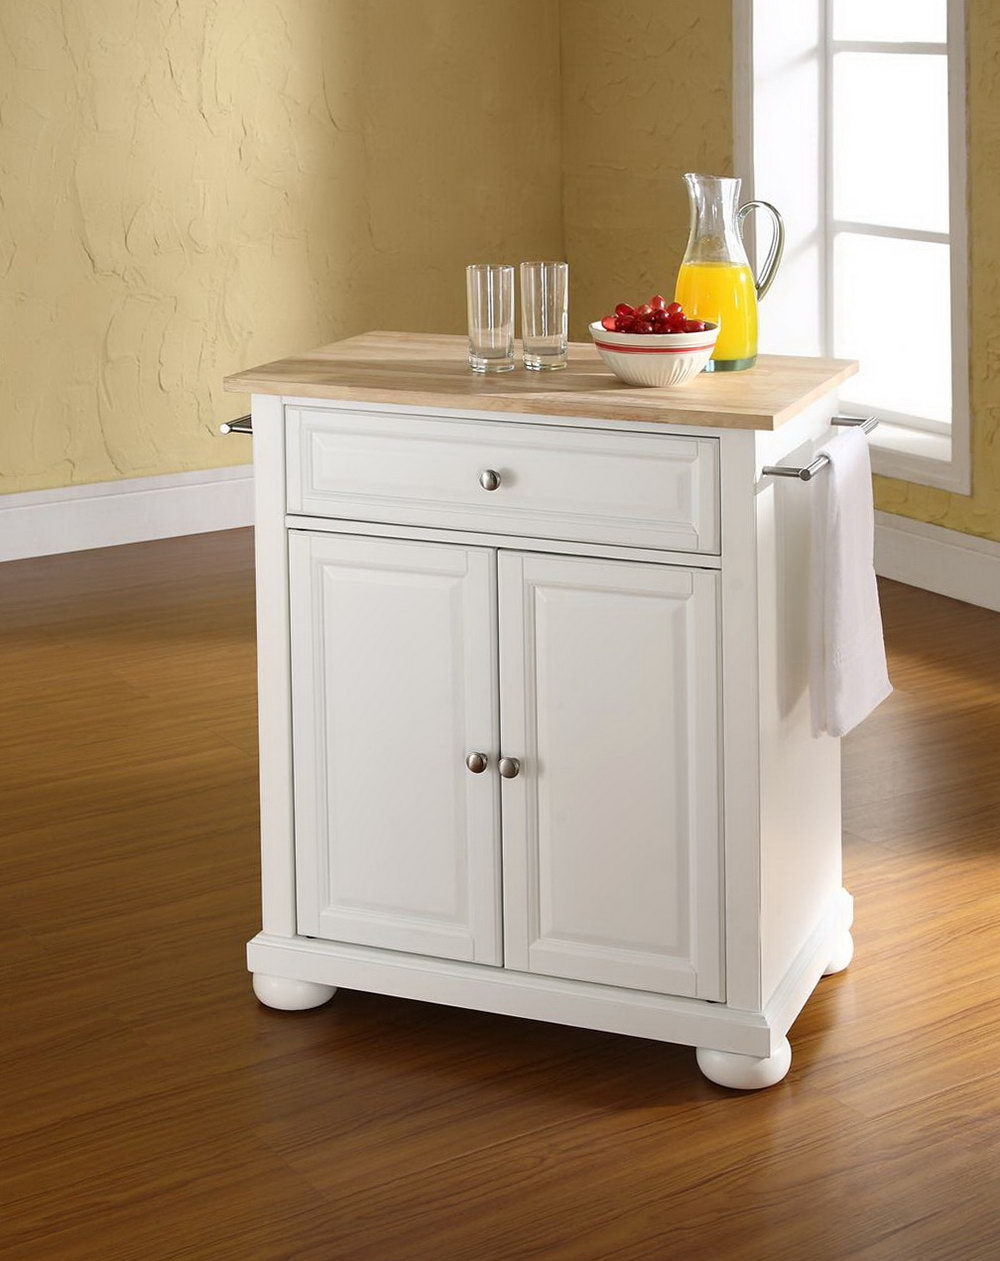 Portable Kitchen Cabinet Malaysia